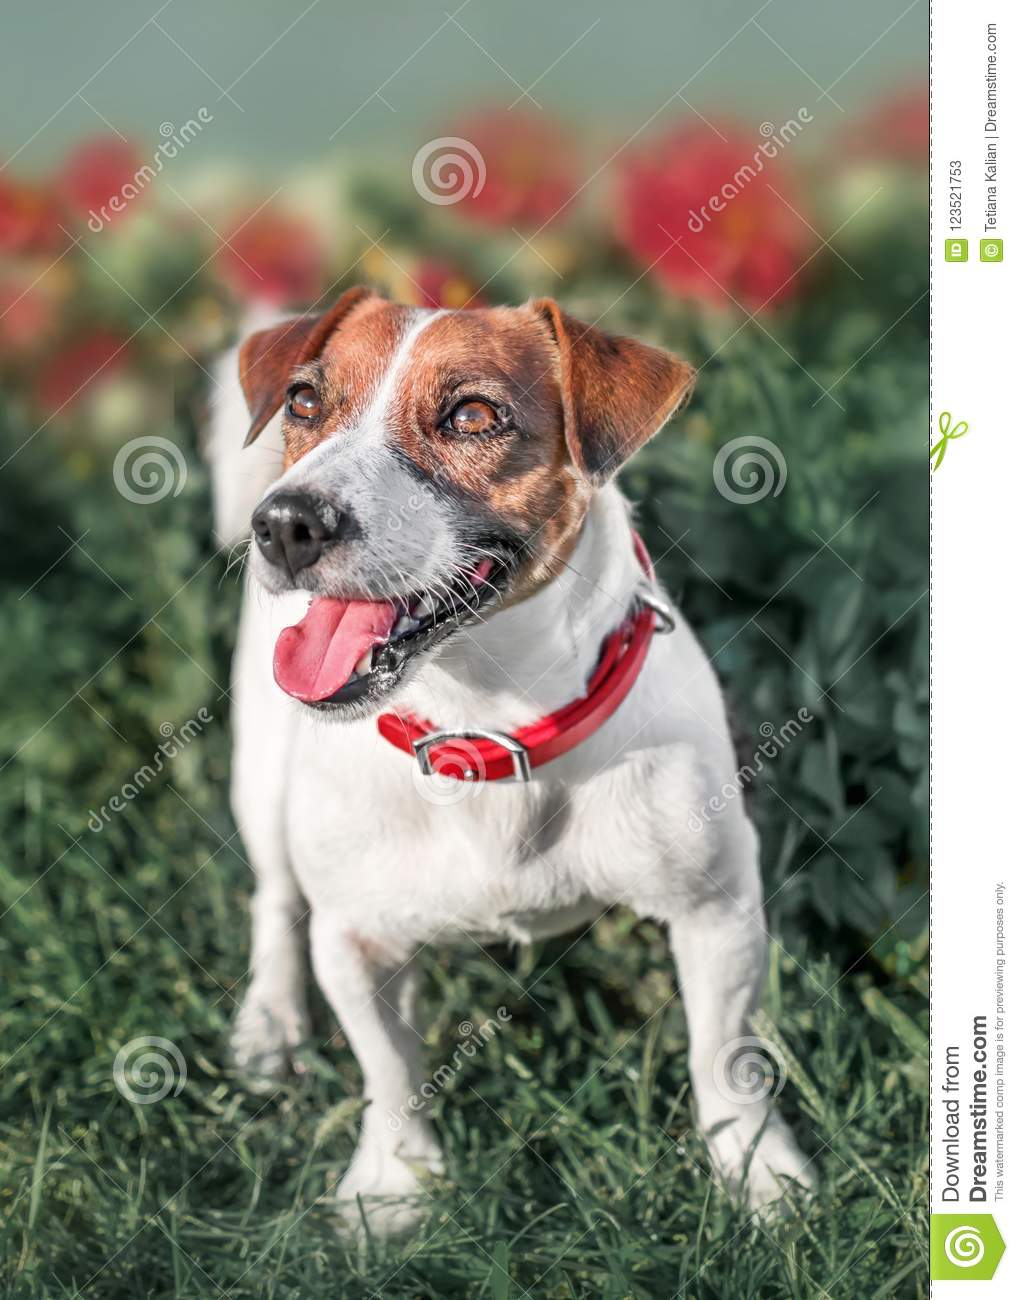 Full-length front portrait of adorable happy smiling small white and red dog jack russel terrier standing in flower bed in a summe